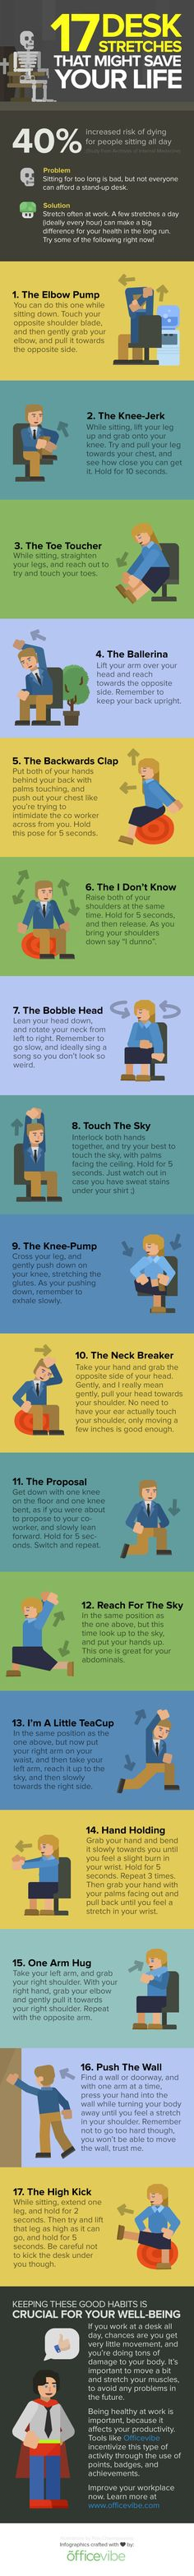 17 Desk Stretches That Might Save Your Life #infographic #Health #EmployeeBenefits